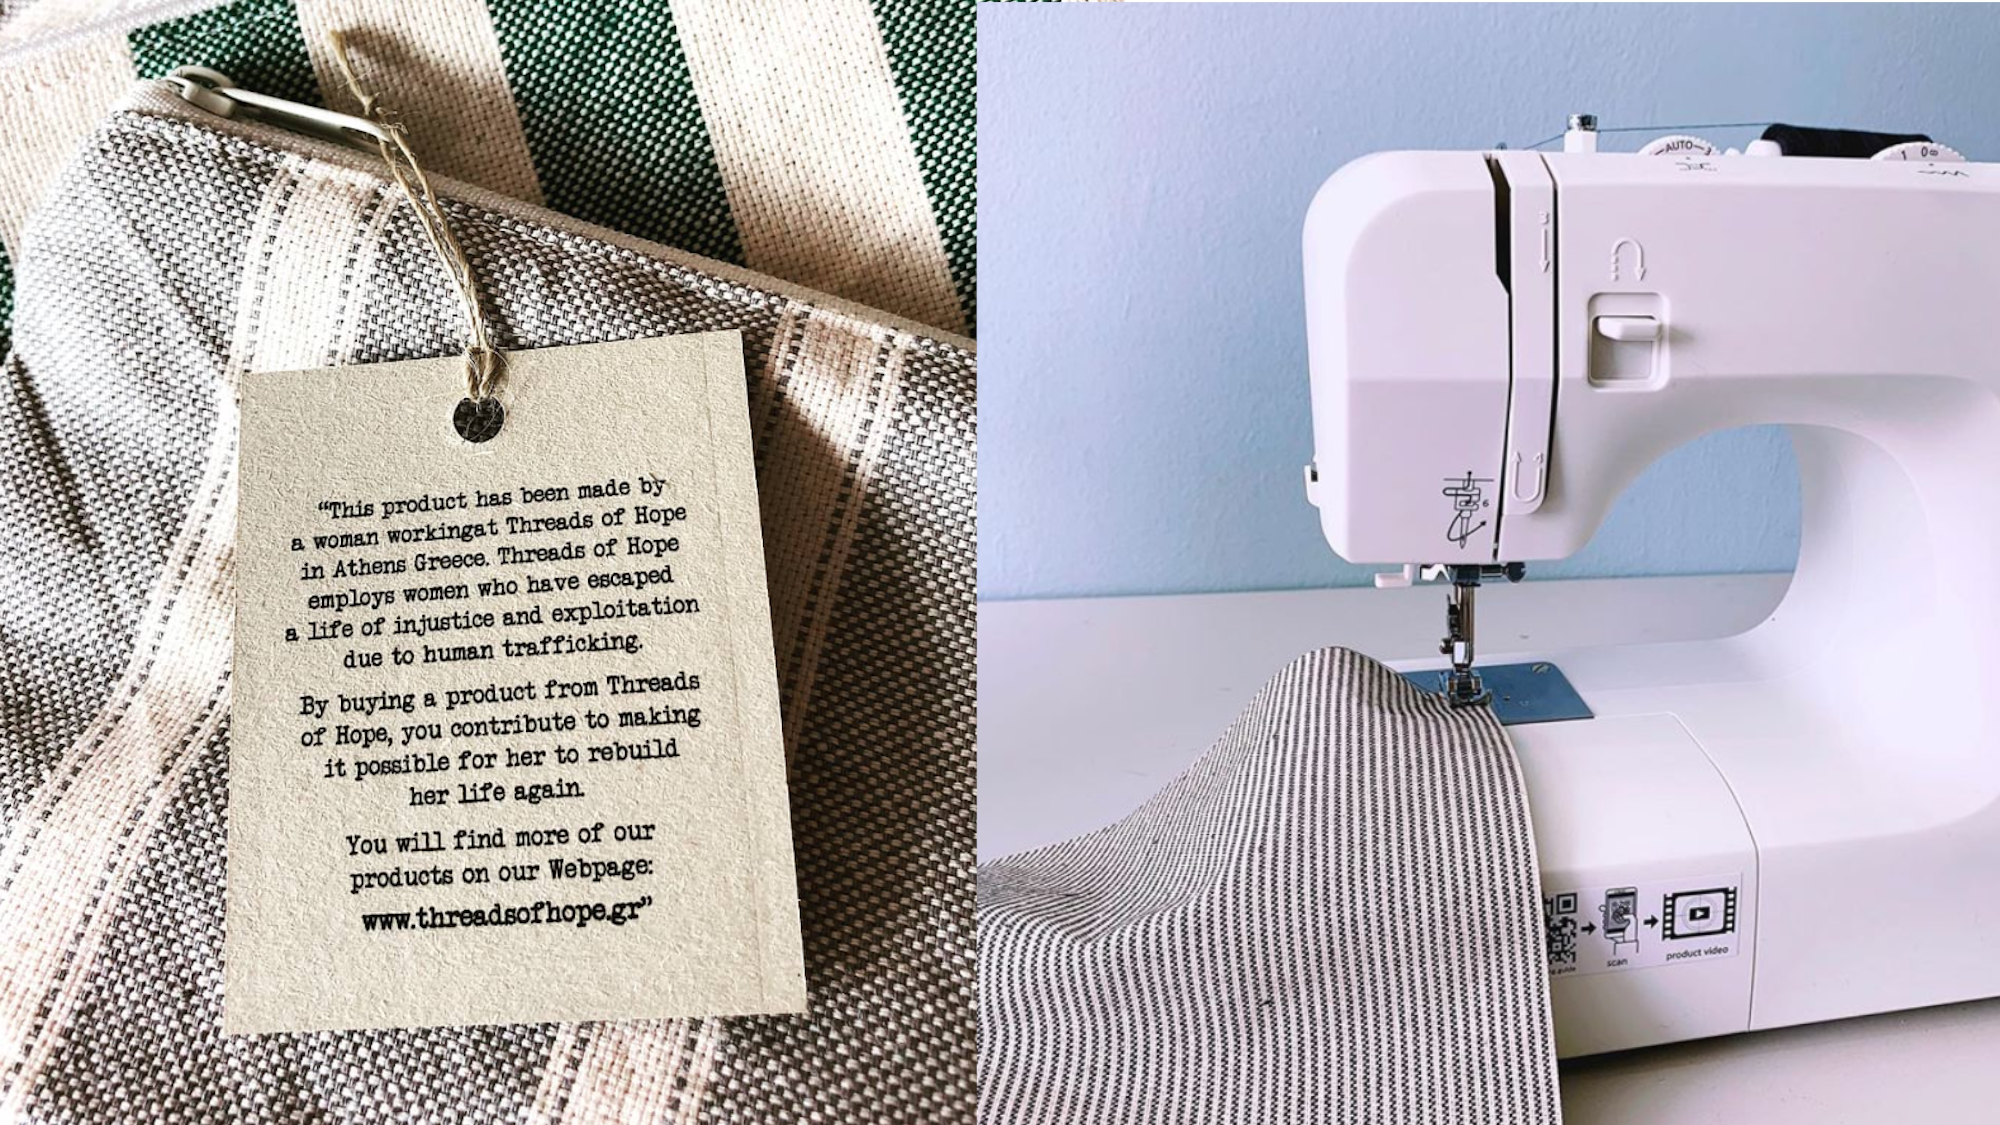 Sewing machine and message